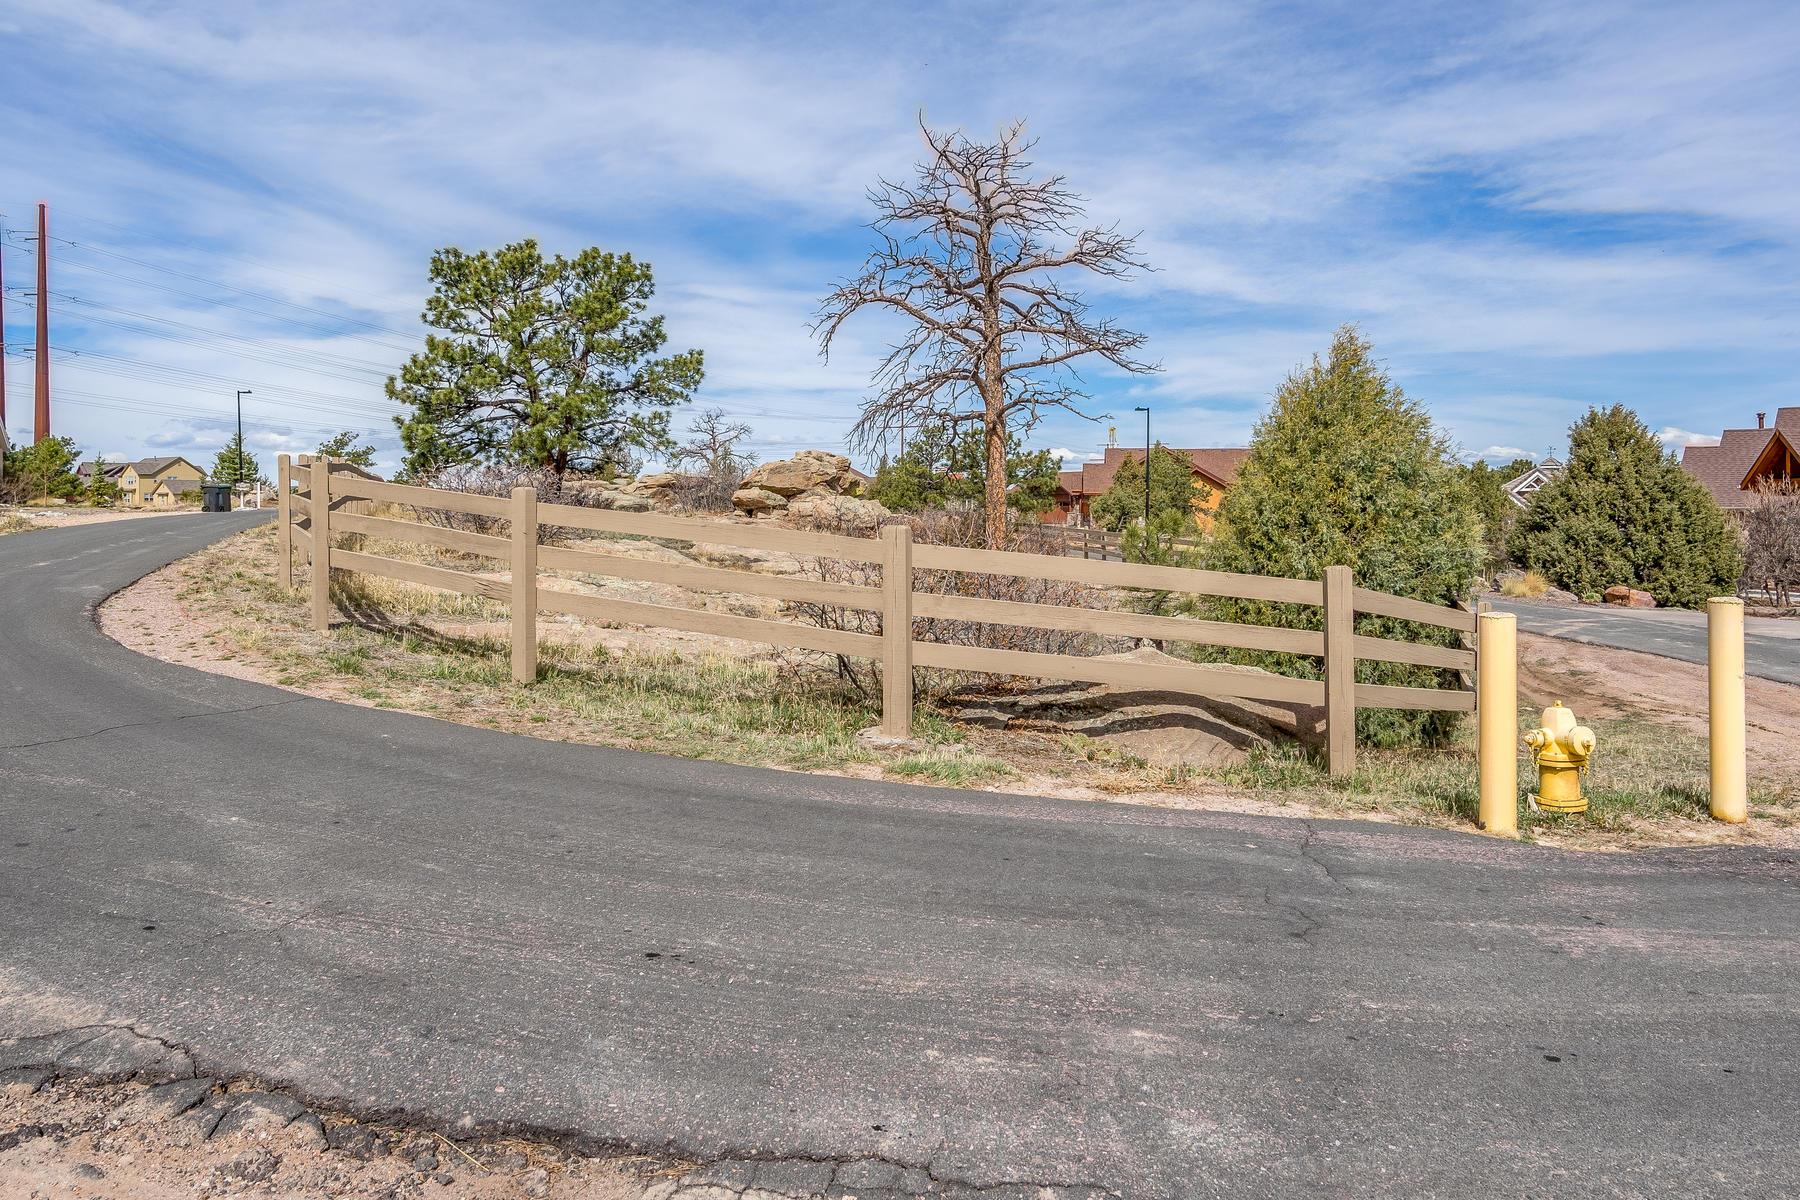 Additional photo for property listing at 6346 Moulton Ct 6346 Moulton Ct Castle Rock, Colorado 80104 United States